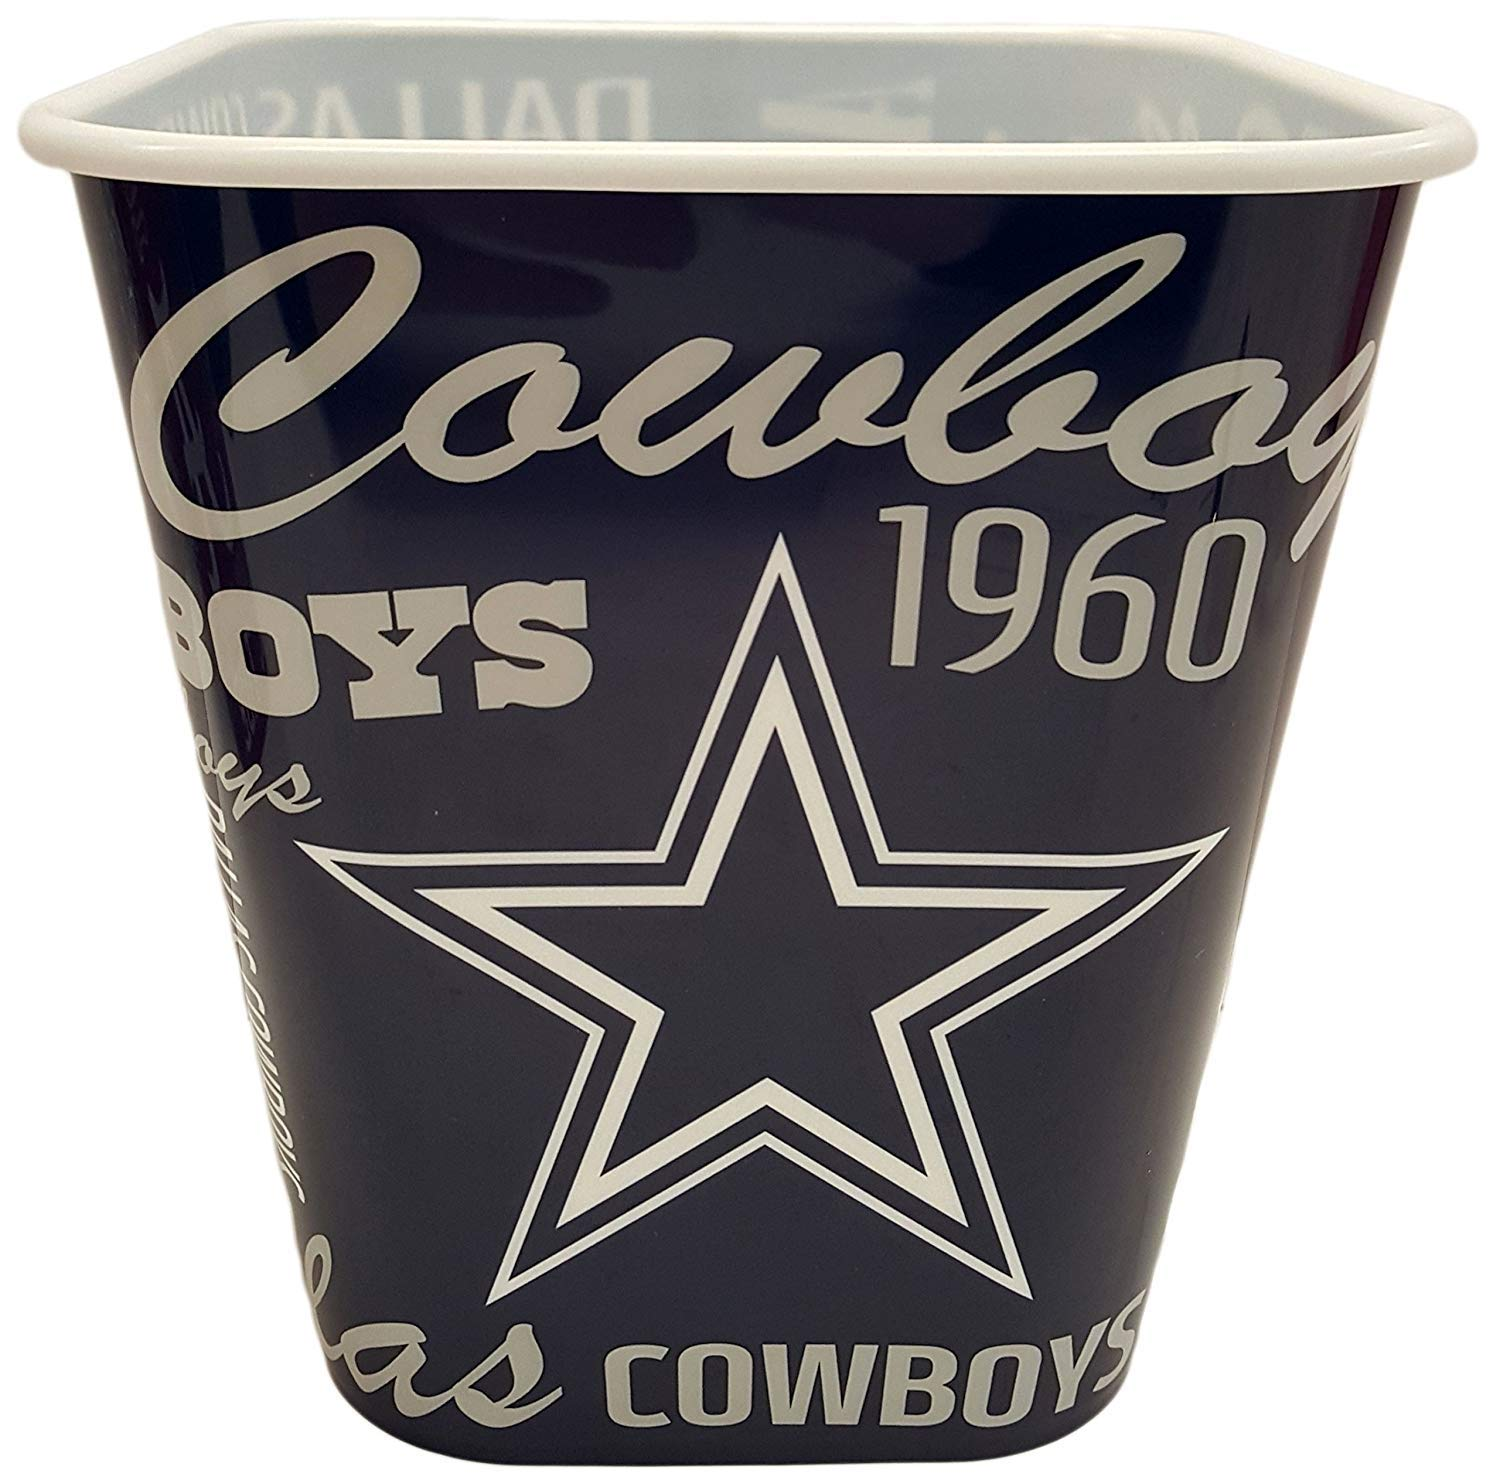 or Use as a Storage Bin! Movie Watching NFL Dallas Cowboys Snack Buckets Dallas Cowboys 7x6.5- Perfect for Game Watching